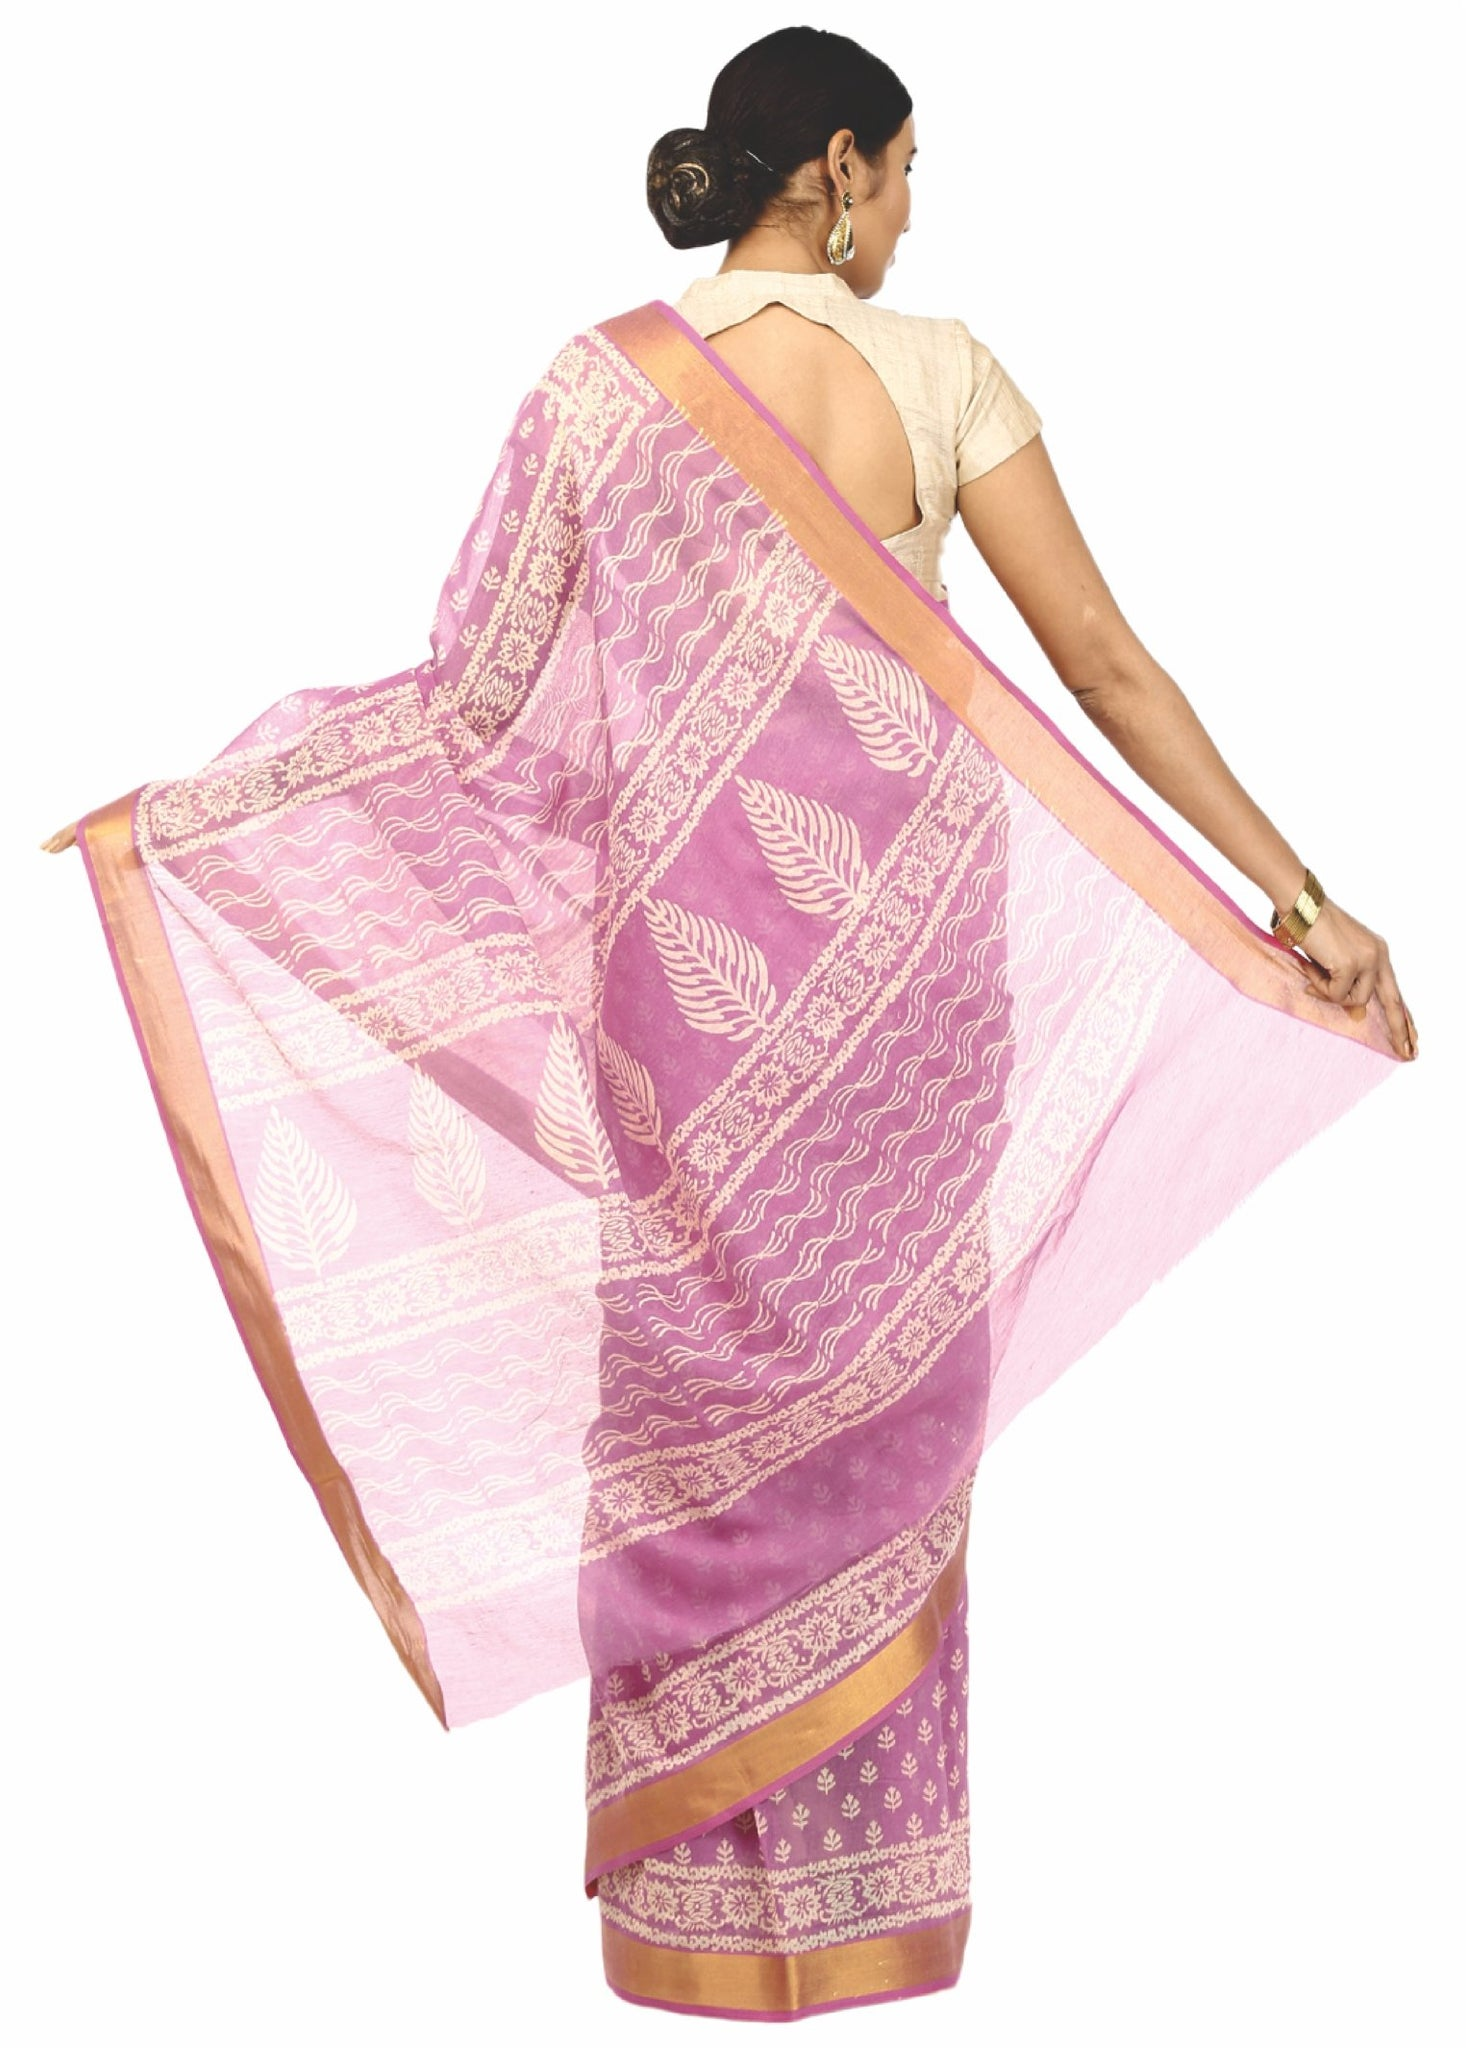 Pink Sanganeri Hand Block Print Cotton Kota DoriaSupernet Handcrafted Saree-Saree-Kalakari India-RDSNSA0018-Geographical Indication, Hand Blocks, Hand Crafted, Heritage Prints, Kota Doria, Sanganeri, Sarees, Sustainable Fabrics-[Linen,Ethnic,wear,Fashionista,Handloom,Handicraft,Indigo,blockprint,block,print,Cotton,Chanderi,Blue, latest,classy,party,bollywood,trendy,summer,style,traditional,formal,elegant,unique,style,hand,block,print, dabu,booti,gift,present,glamorous,affordable,collectible,Sari